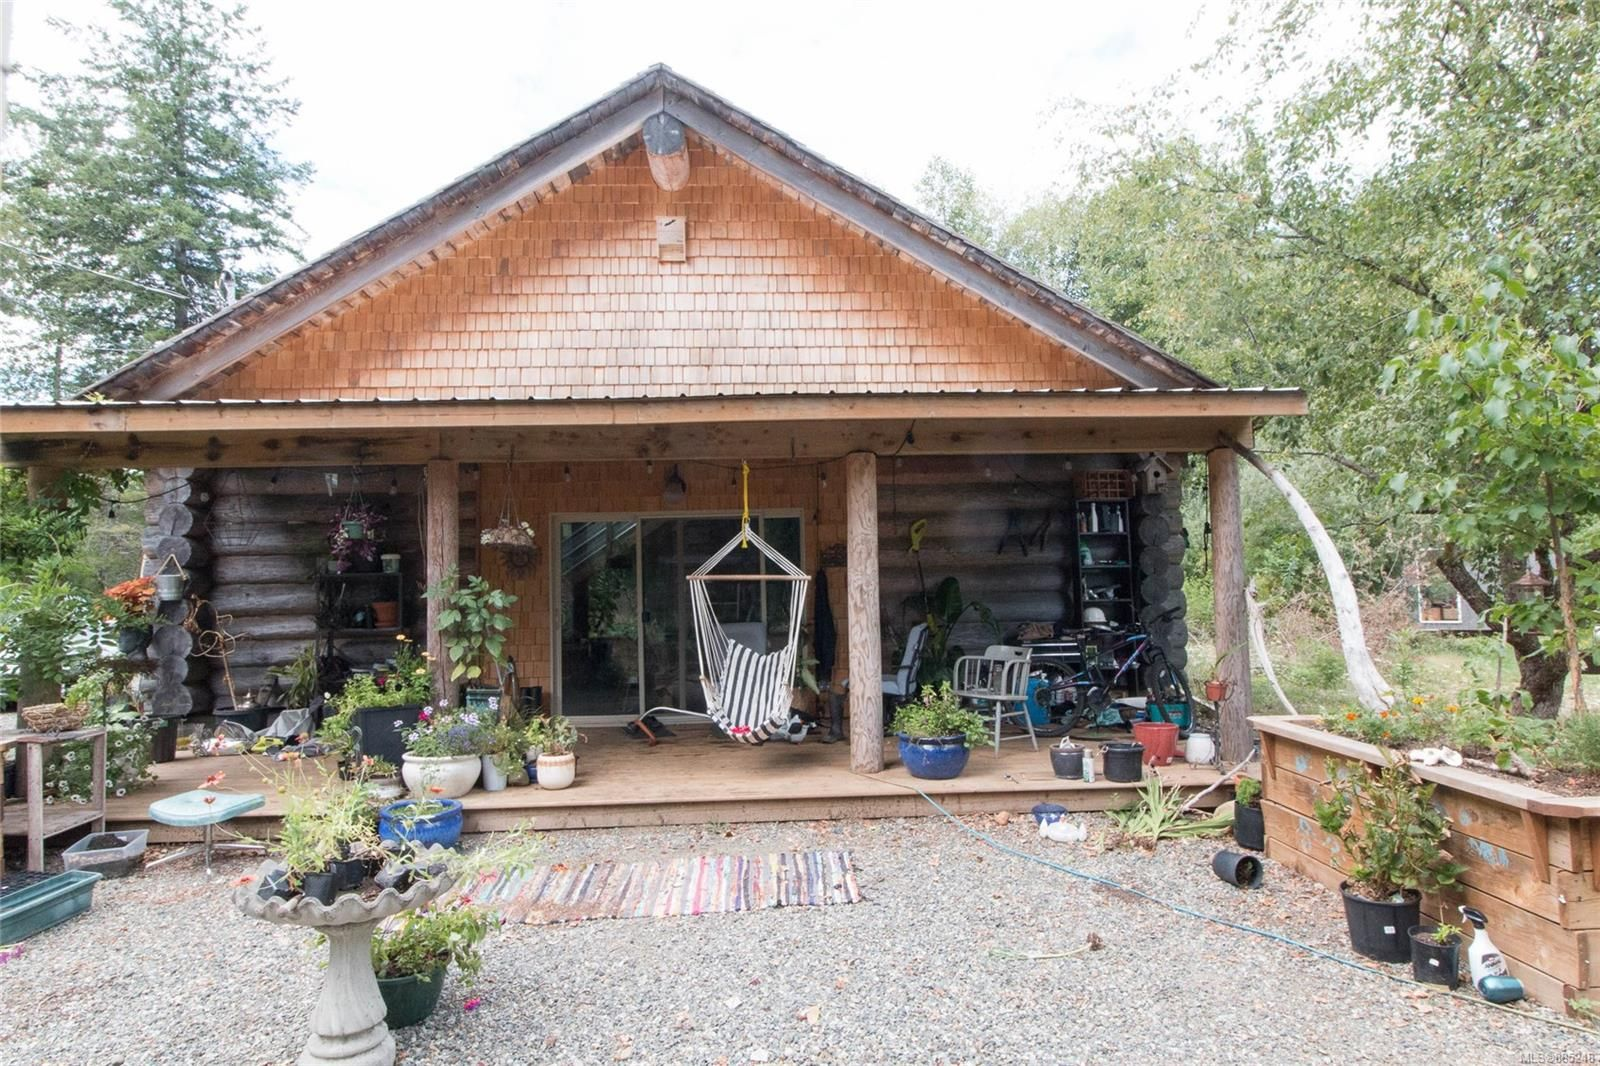 Photo 8: Photos: 5866 Nelson Rd in : CV Courtenay North House for sale (Comox Valley)  : MLS®# 885248